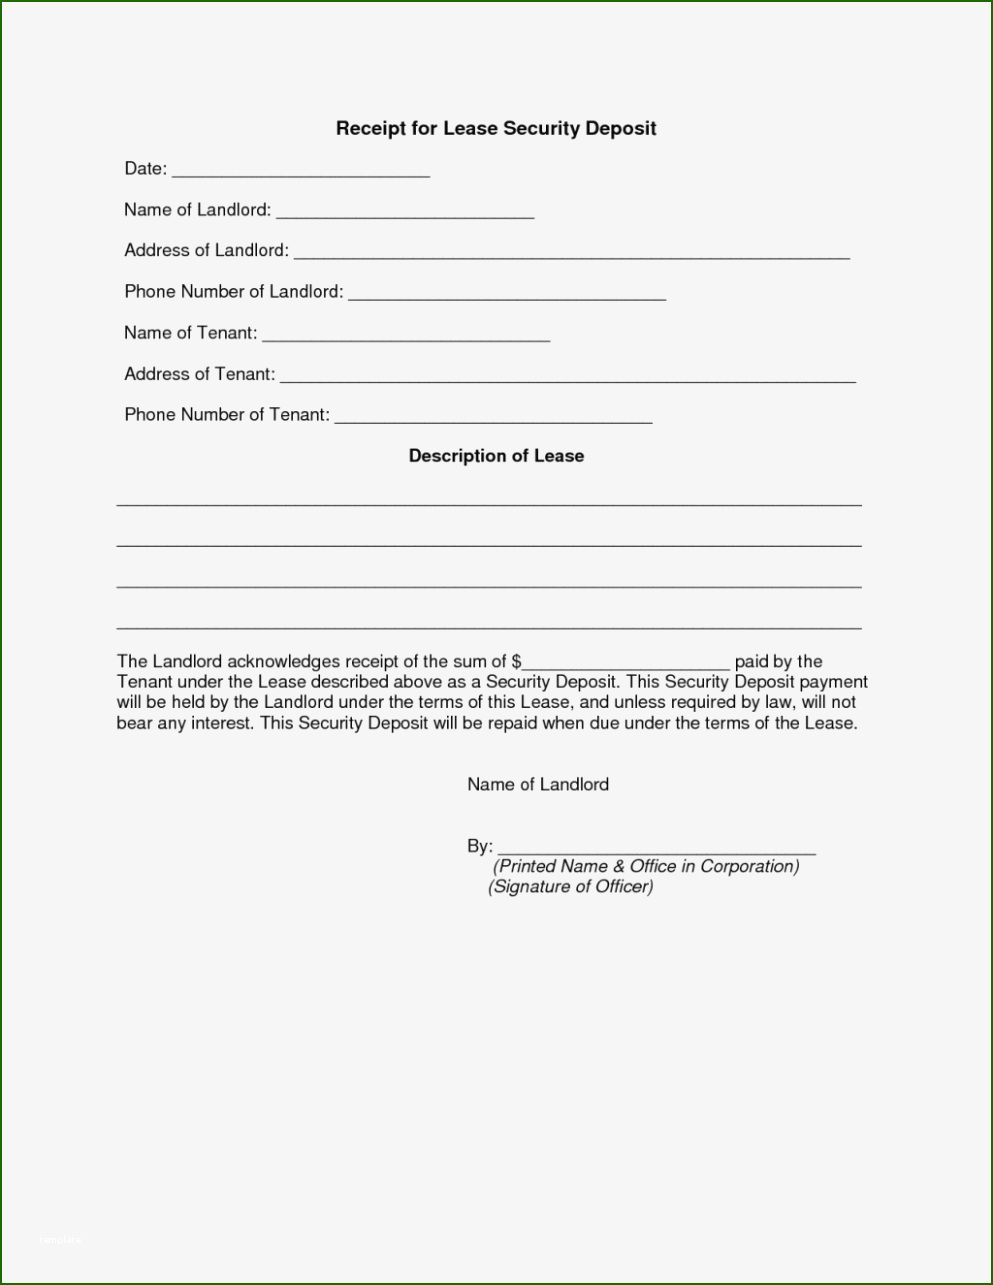 Awesome Security Deposit Receipt Template Of 2020 Receipt Template Free Receipt Template Survey Template